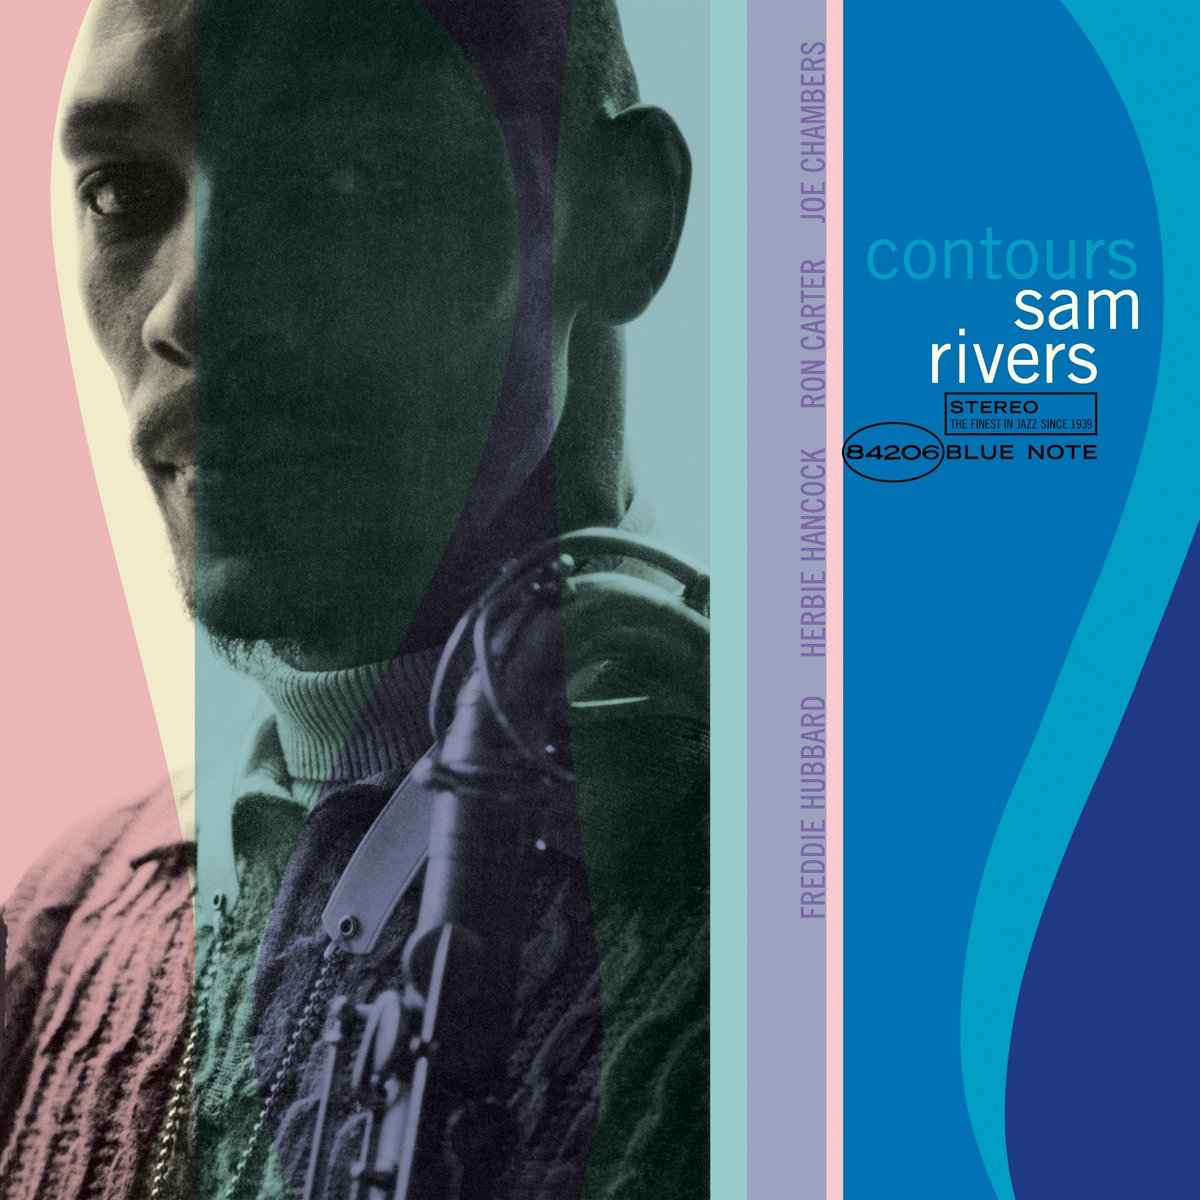 #SamRivers gets the Tone Poet treatment with our new all-analog 180g vinyl reissue of his tremendous 1965 album 'Contours' out 3/15: https://t.co/kwSJRRfy40  Sam Rivers, tenor & soprano sax, flute Freddie Hubbard, trumpet Herbie Hancock, piano Ron Carter, bass Joe Chambers, drums